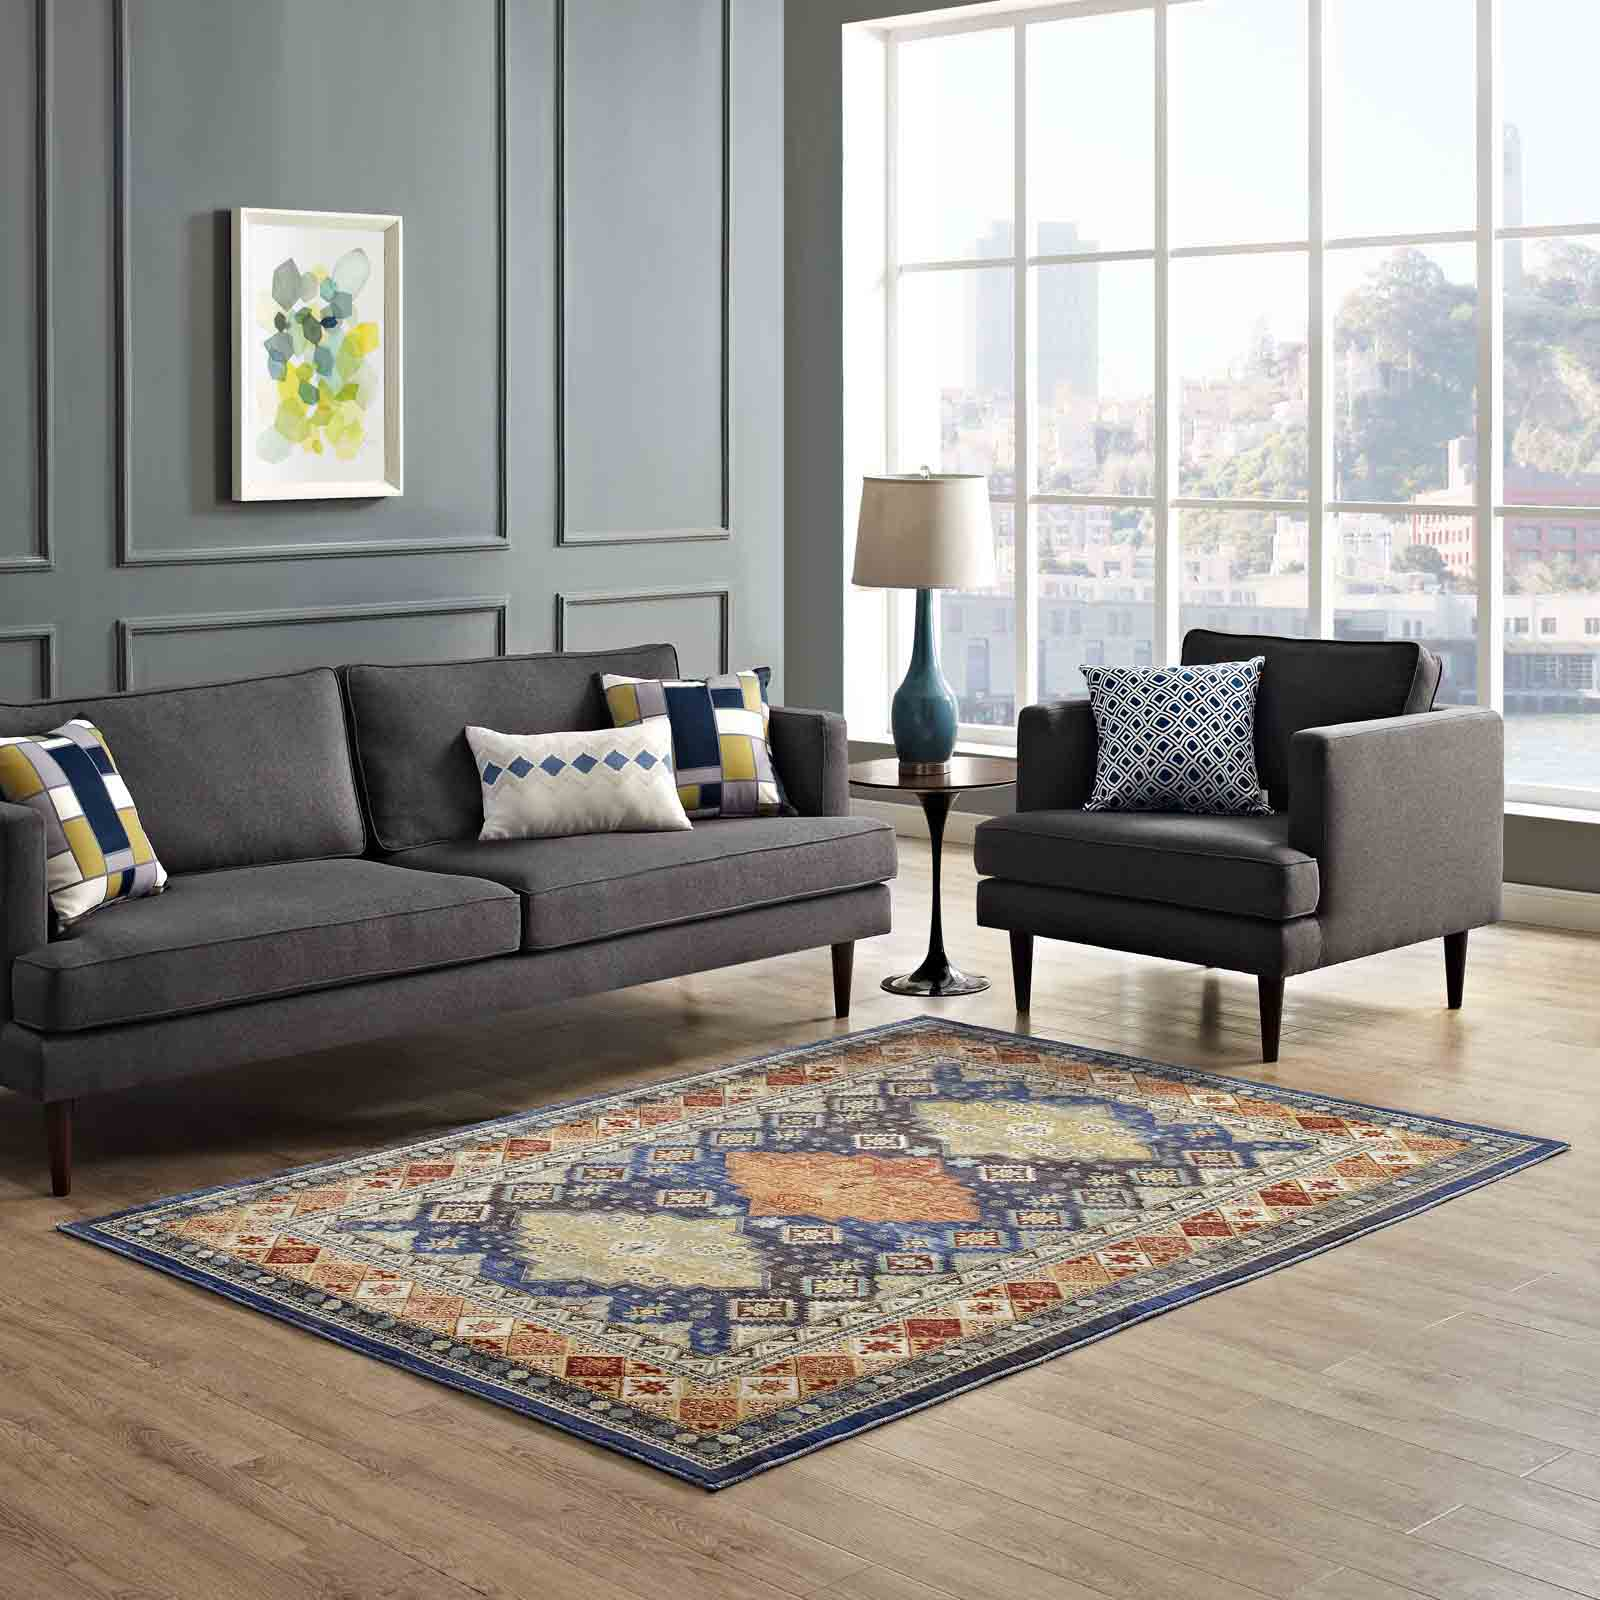 Modterior D 233 Cors Rugs Atzi Distressed